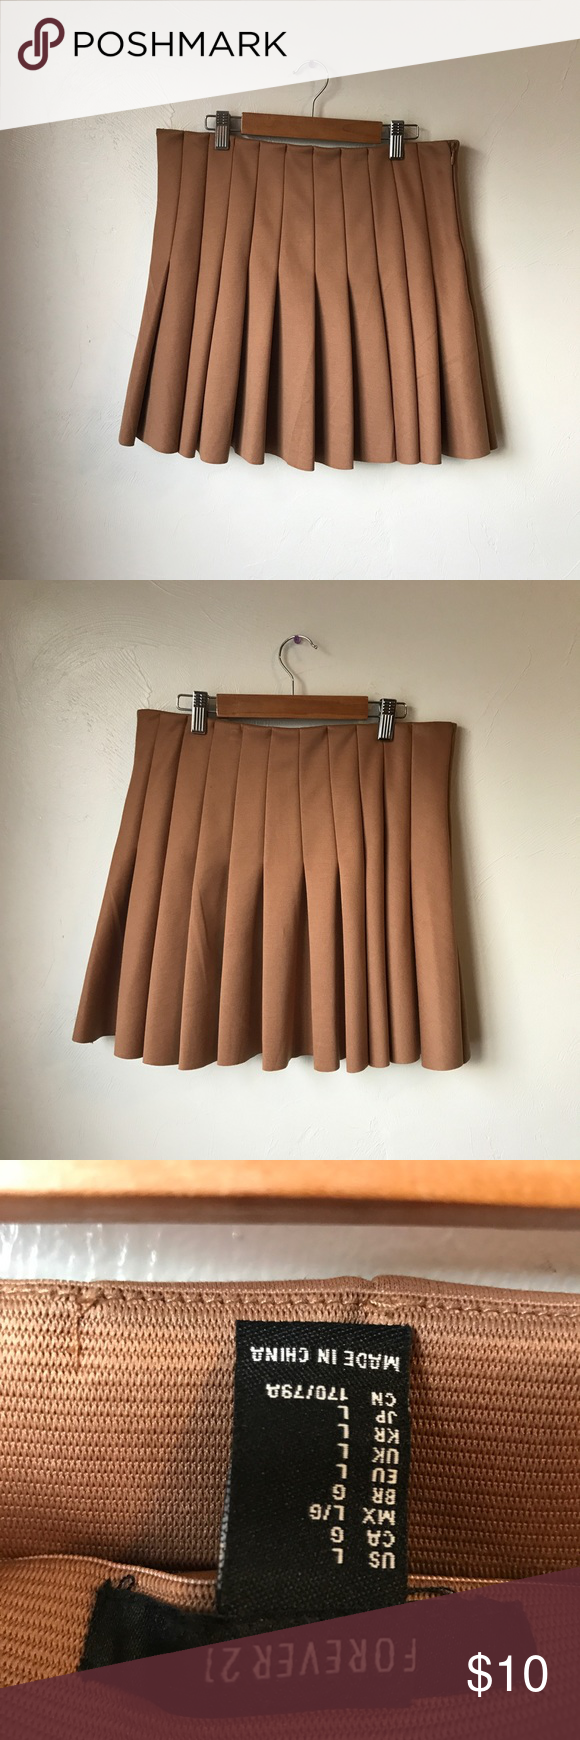 Forever 21 schoolgirl pleated miniskirt beige sz L Love this skirt I'm so sad it doesn't fit☹️ its size large would fit prob a 8/10, it's pretty thick material and feels quality even tho it's forever 21, it has an elastic waist and super comfy Forever 21 Skirts Mini